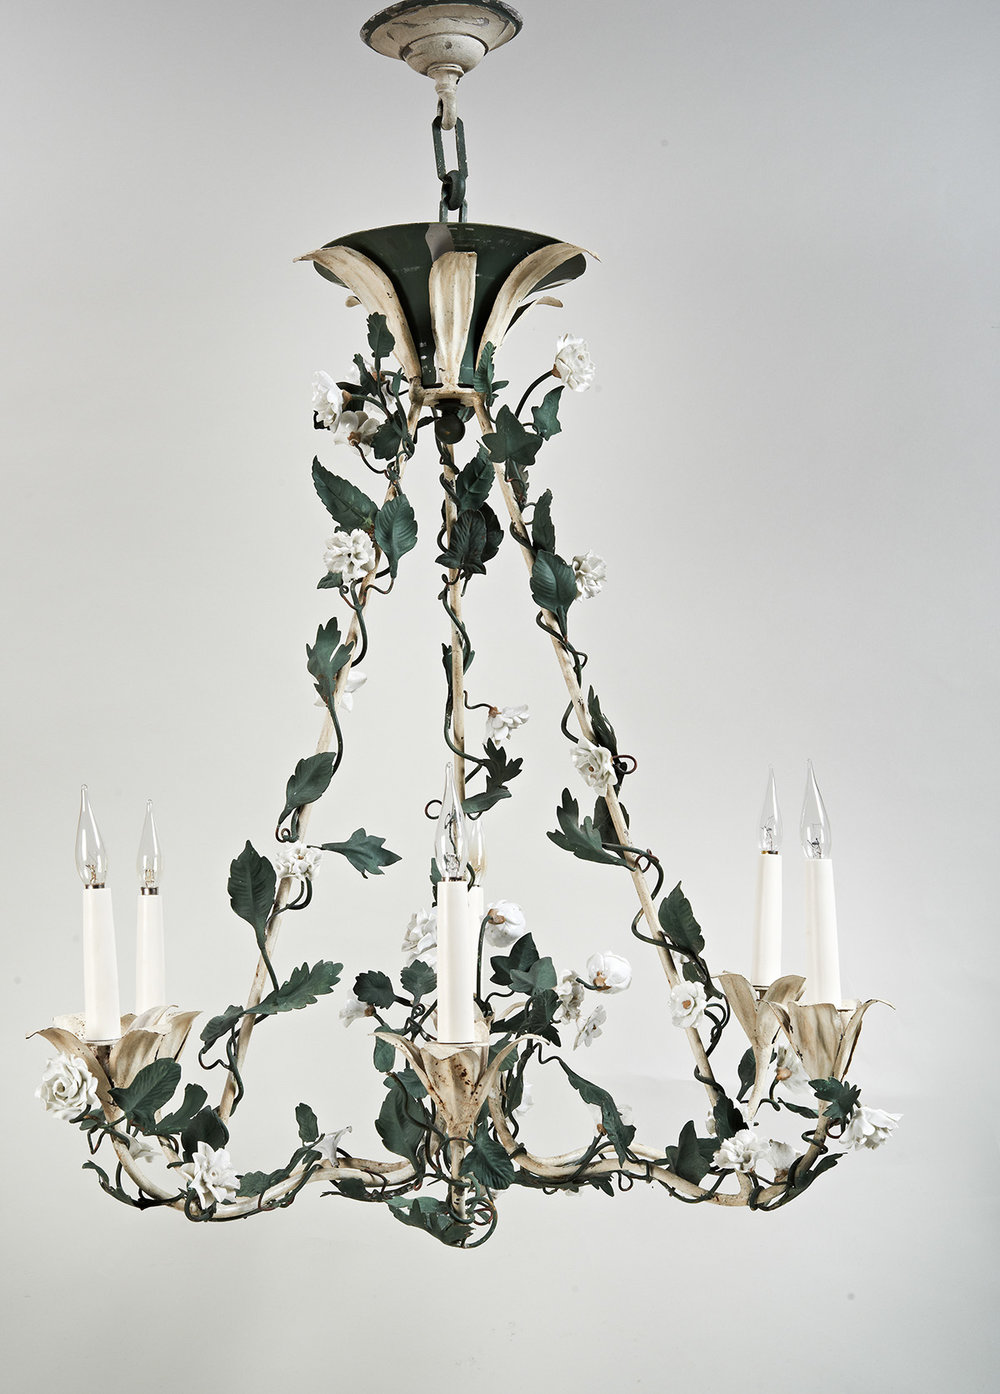 Floral Chandelier Main email.jpg